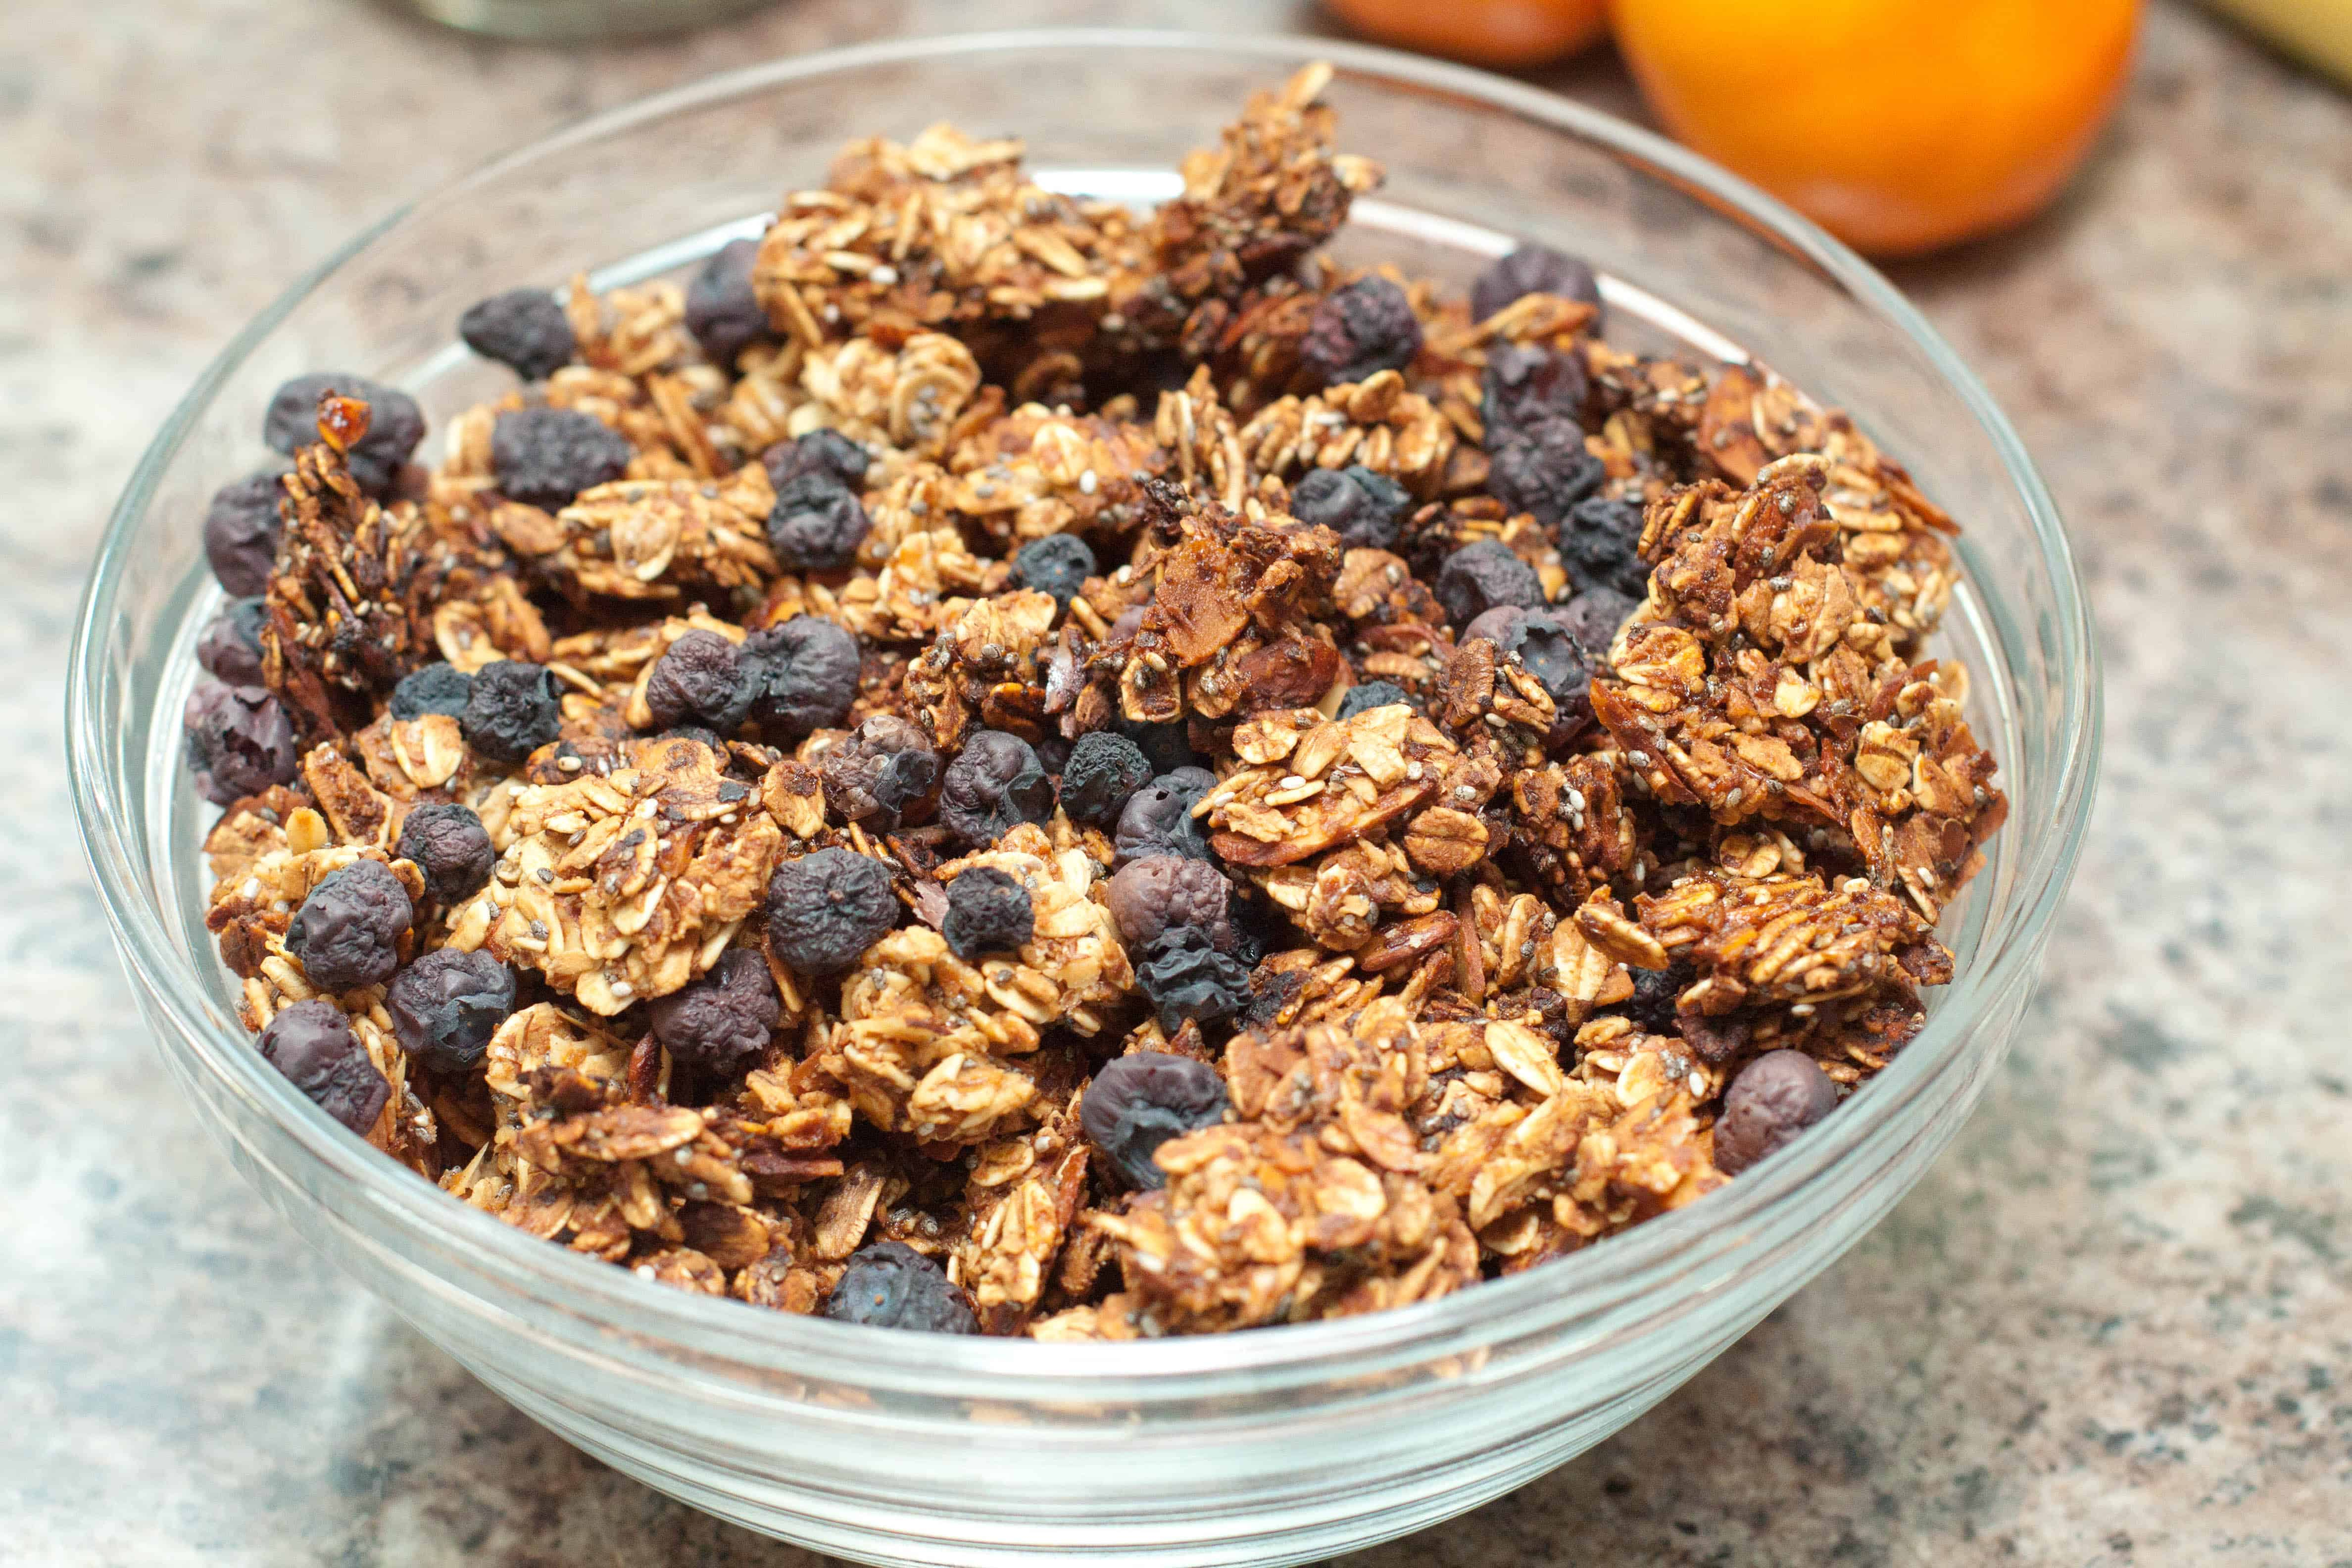 Oil free and Vegan, this homemade Blueberry Almond Granola from scratch is one of my favorite healthy, nutritious breakfasts!